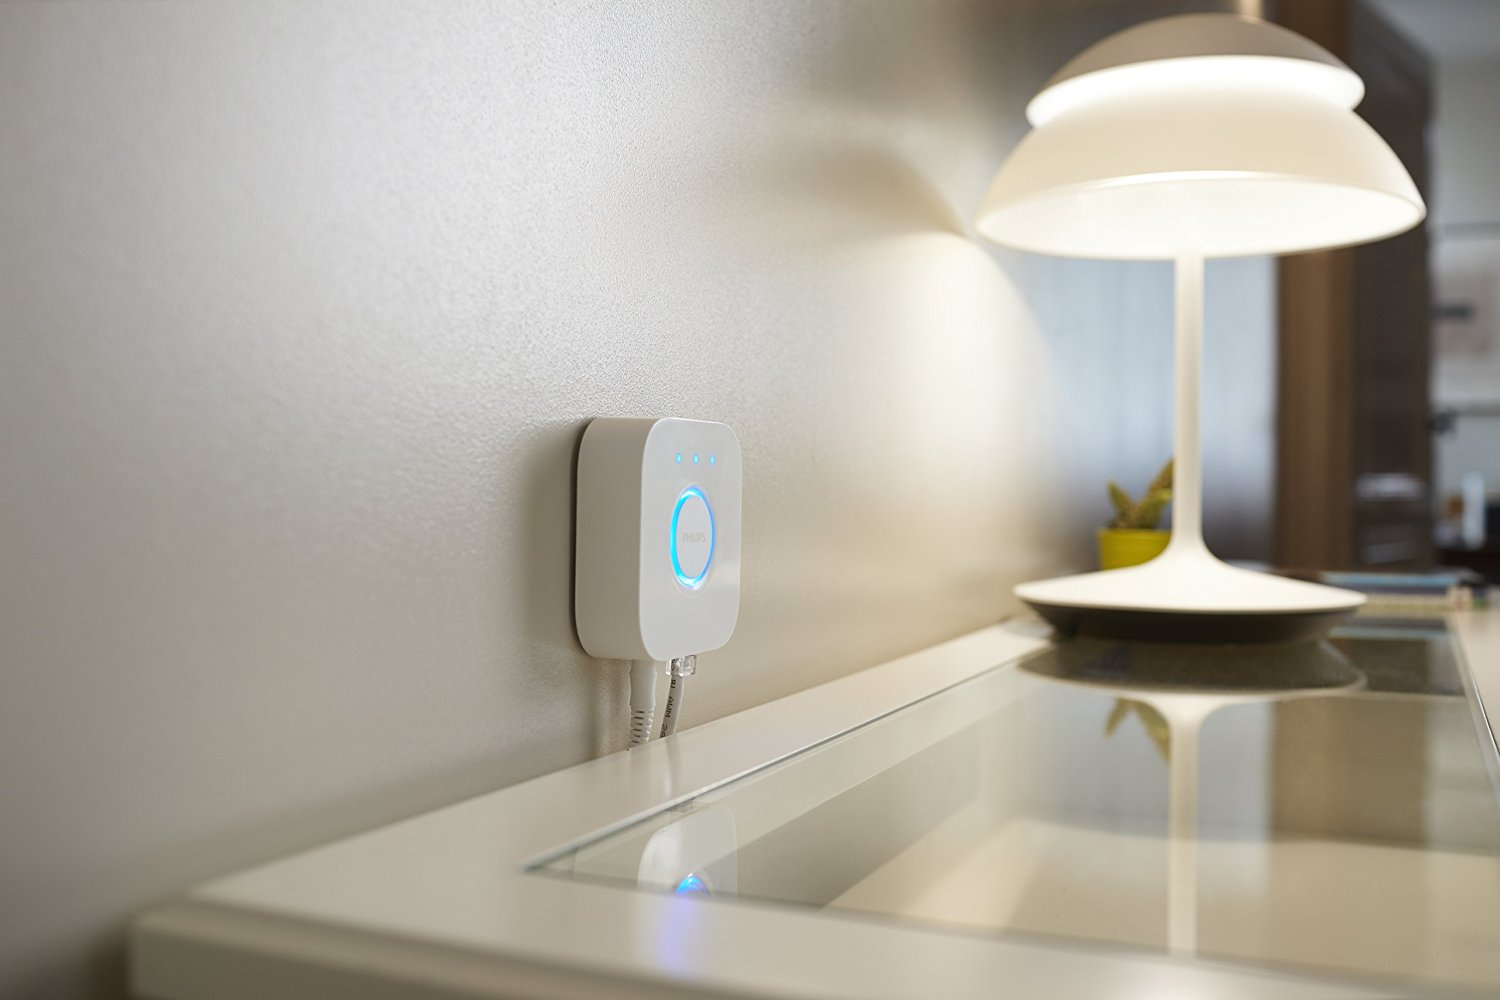 Where To Buy Philips Hue Bridge Philips Hue Lighting - A Beginners Guide - Kip Hakes